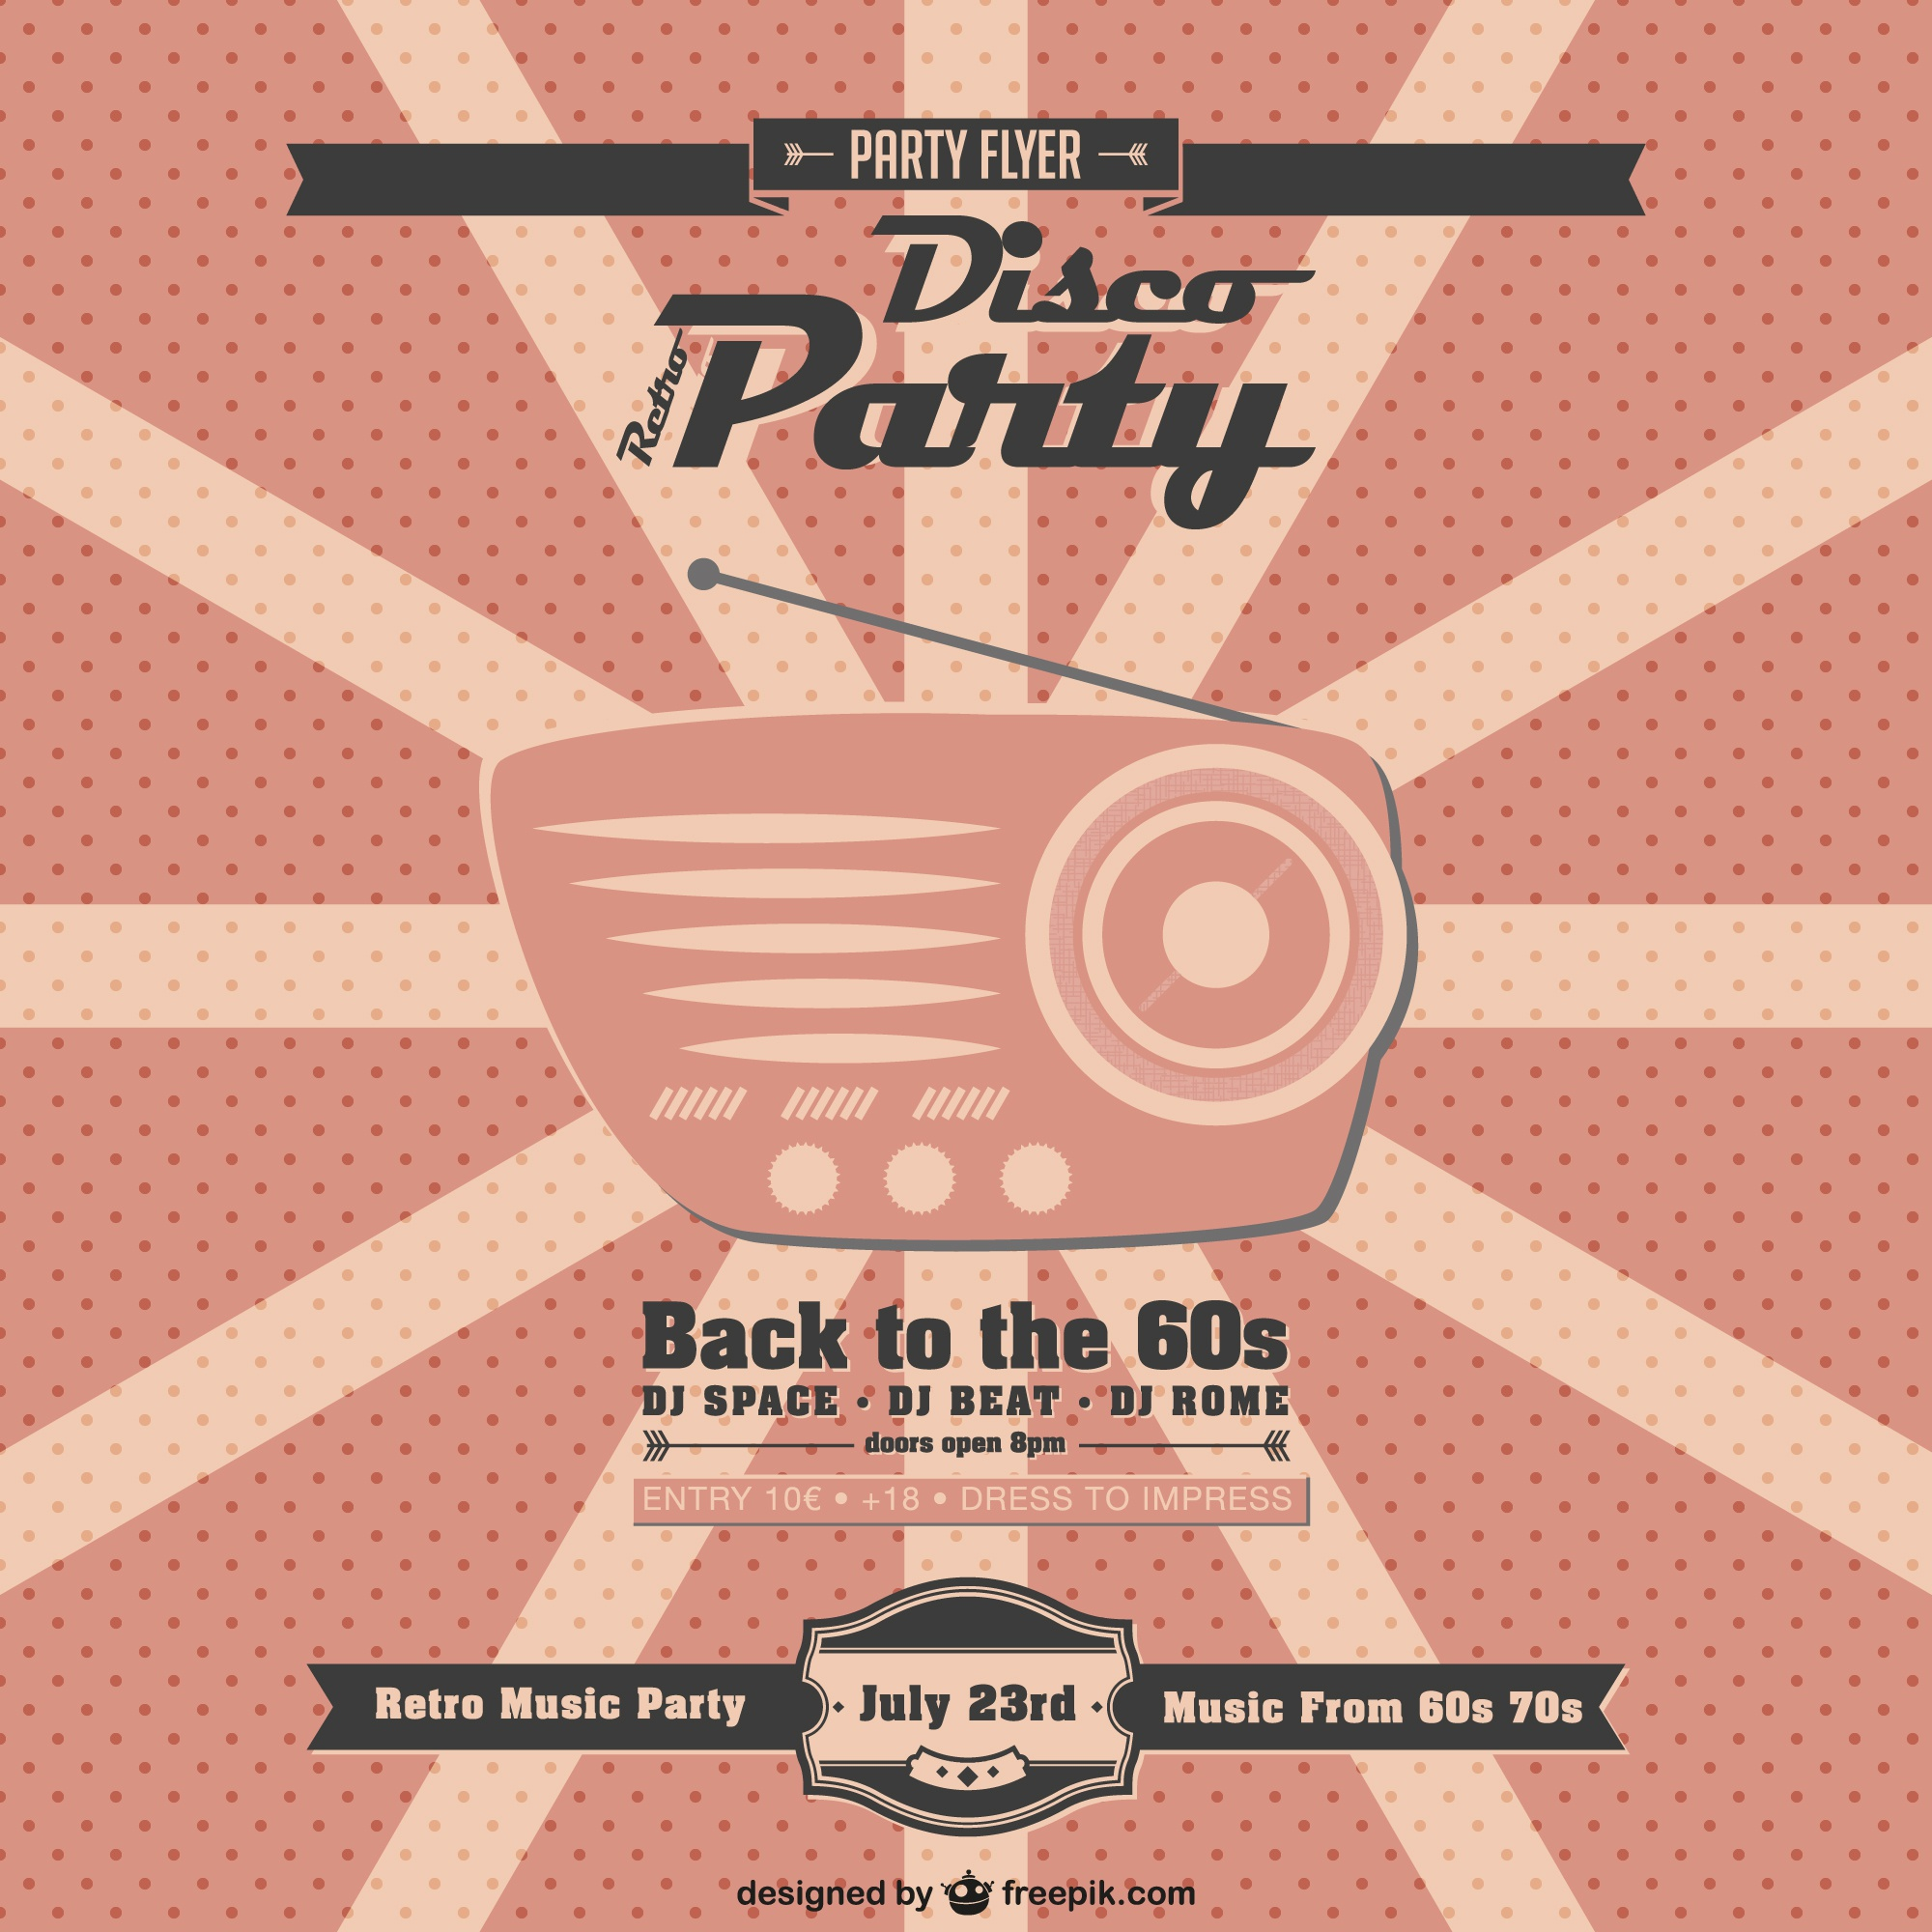 Retro music party vector